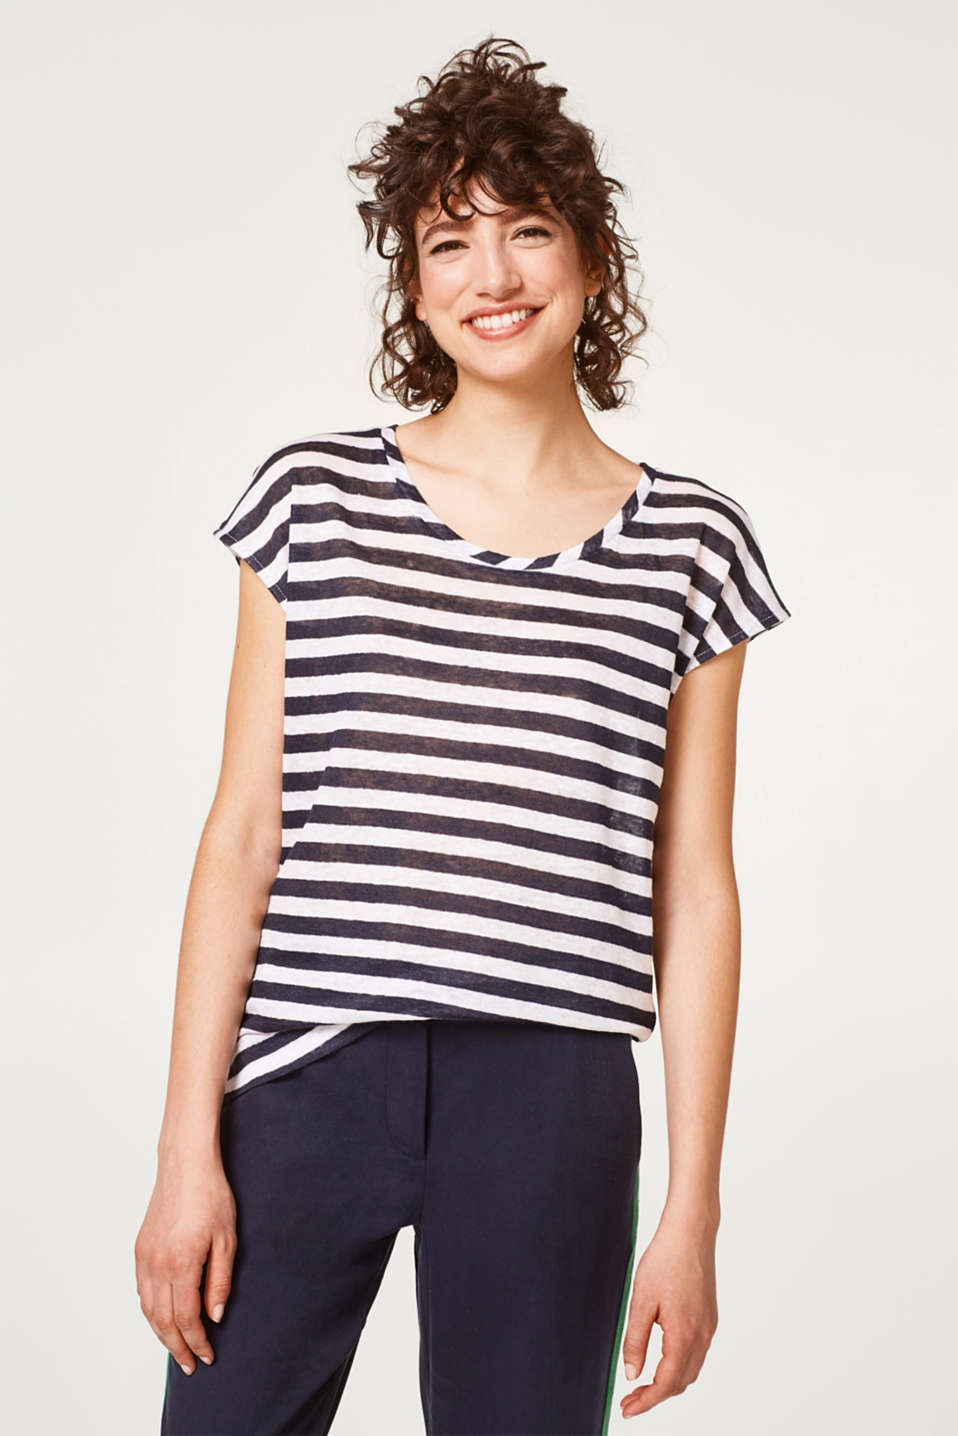 Esprit - Light and airy striped T-shirt in 100% linen